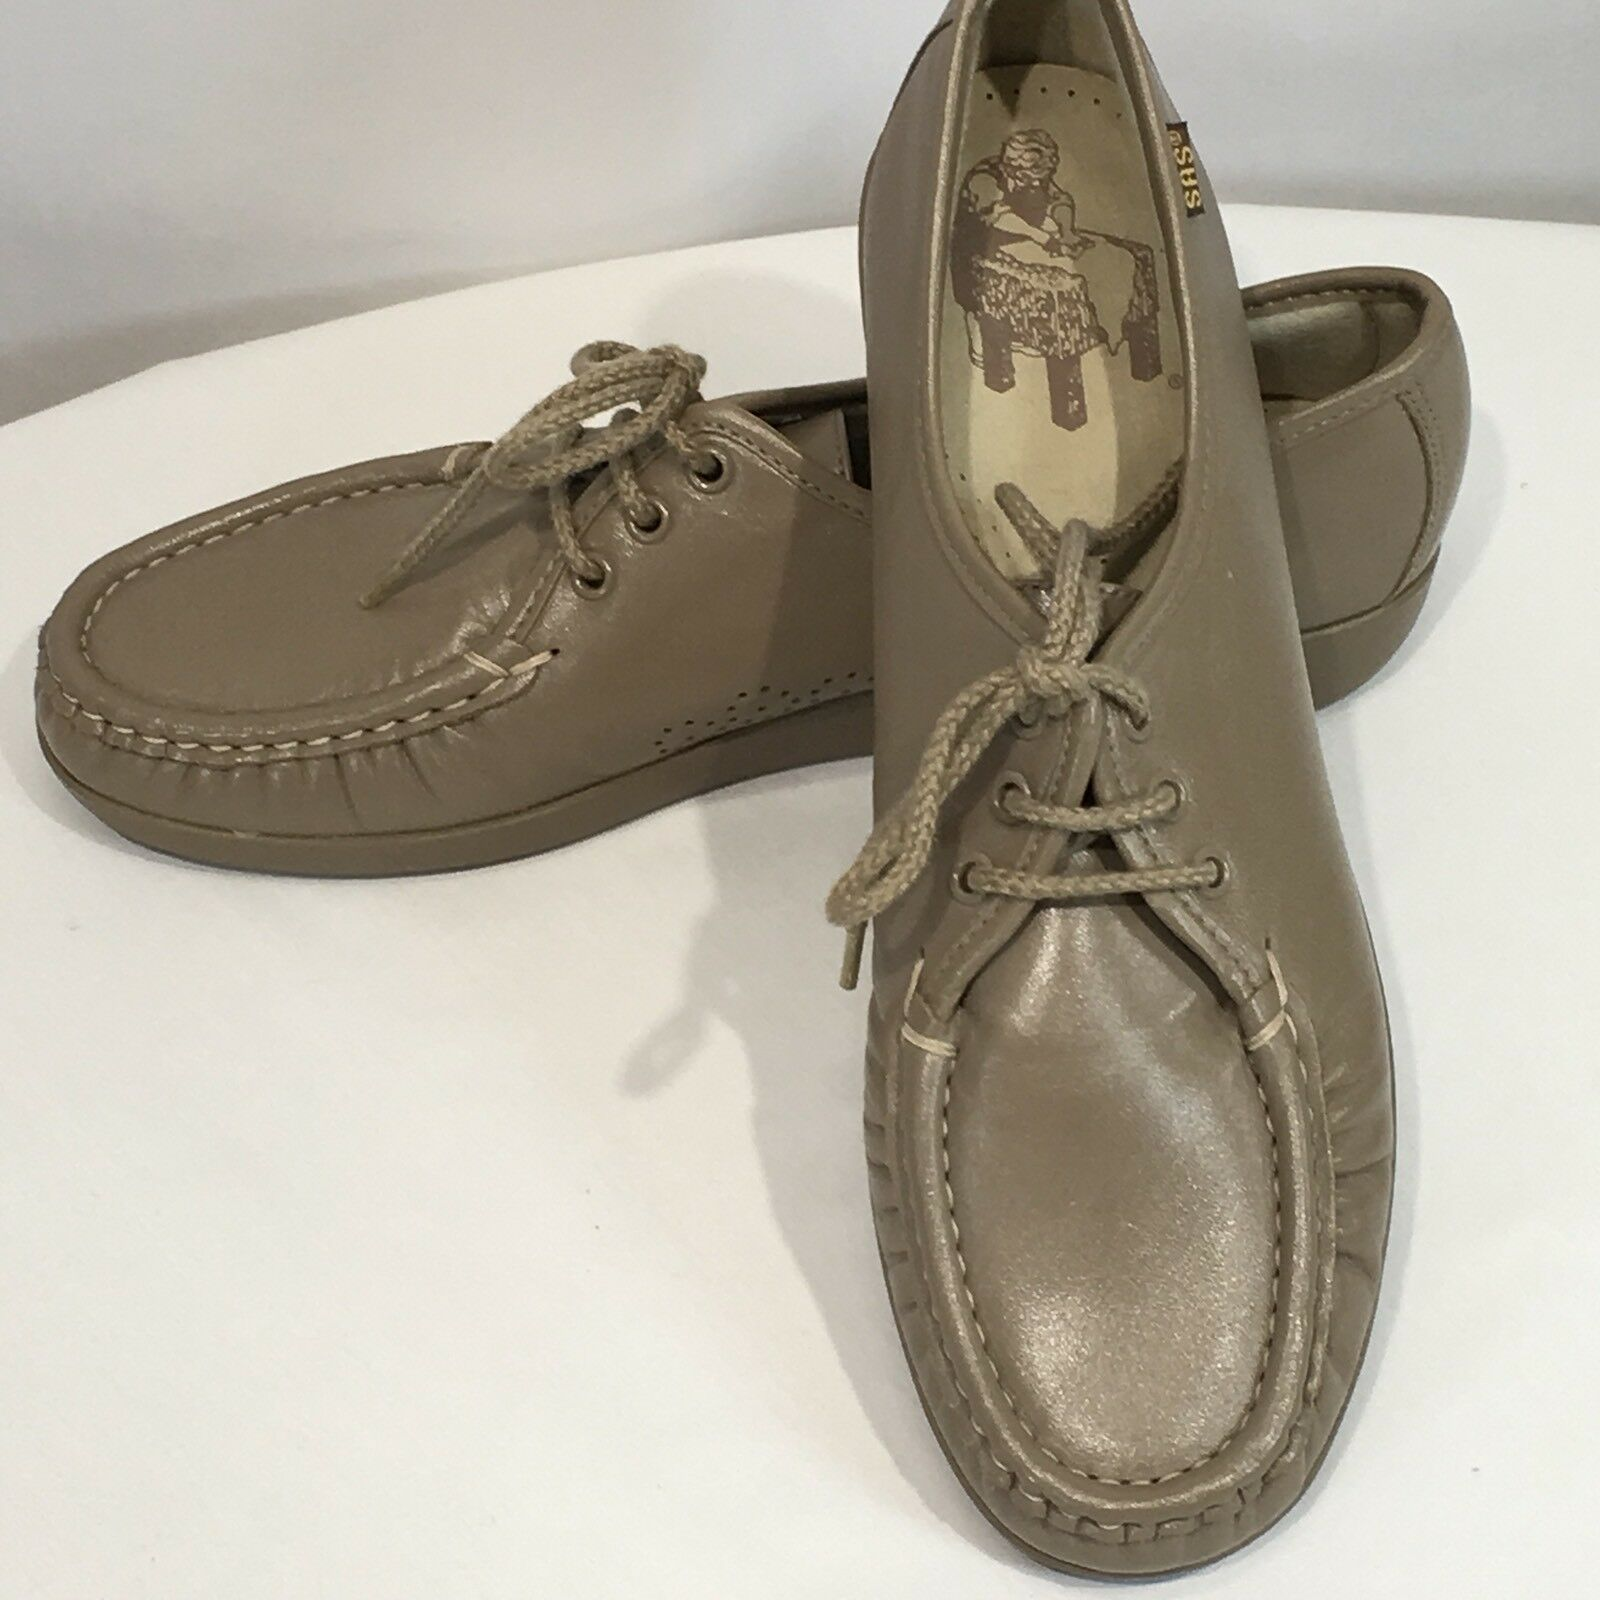 SAS shoes  Siesta  Oxford shoes Size 10 S Womens Mocha Lace Up Cushion Sole Work